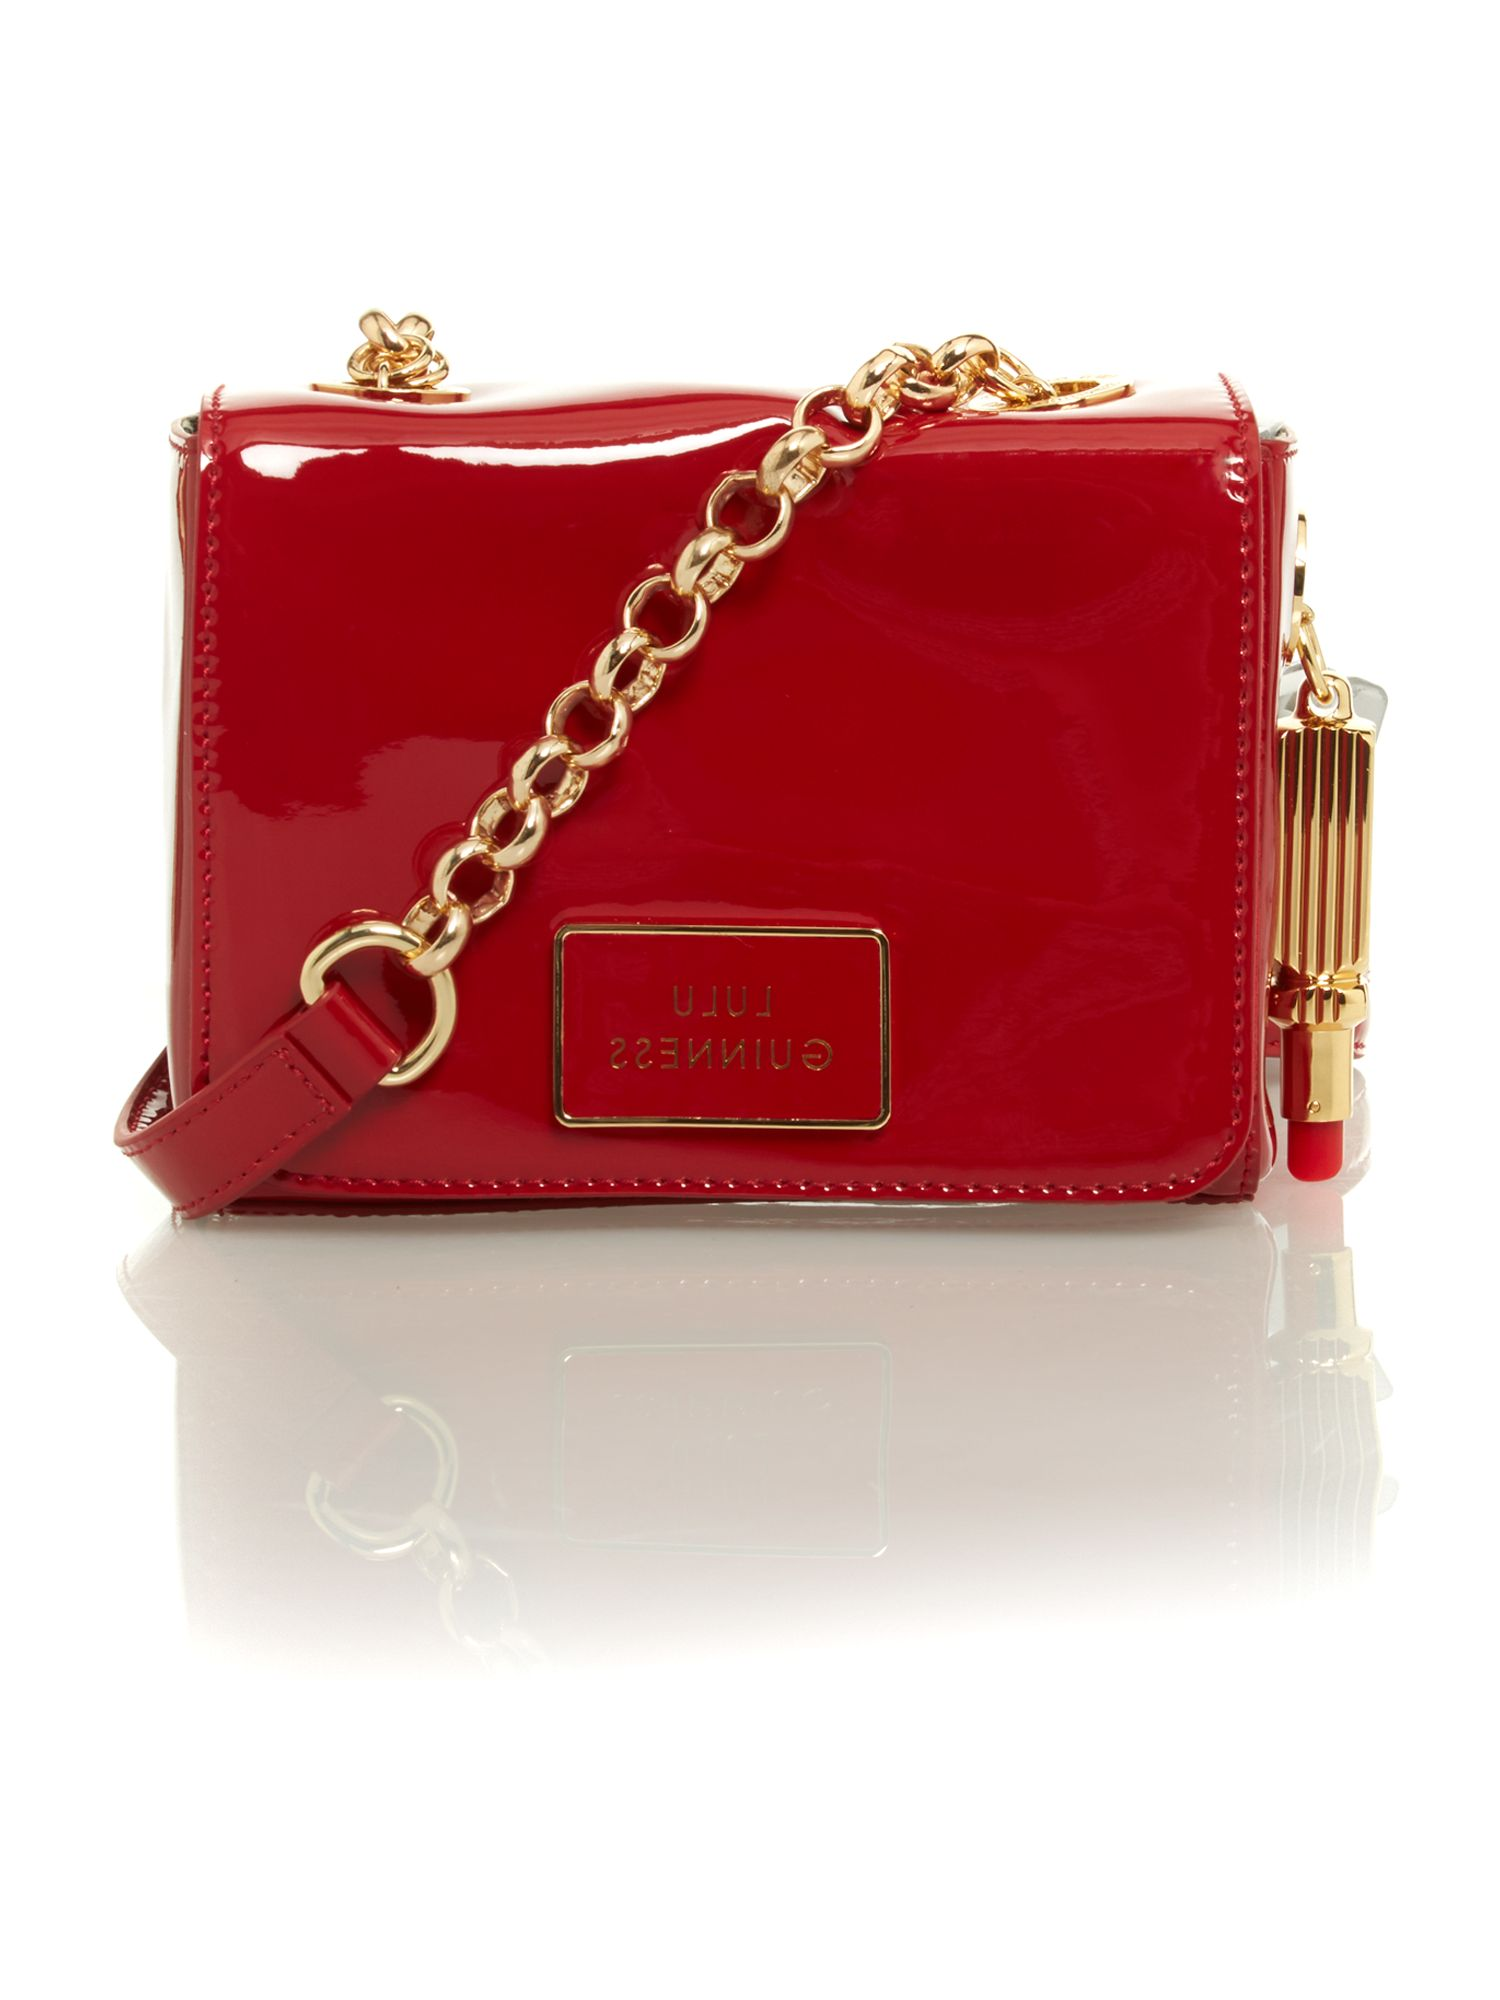 40c934395fb Lyst - Lulu Guinness Red Patent Small Crossbody Bag in Red